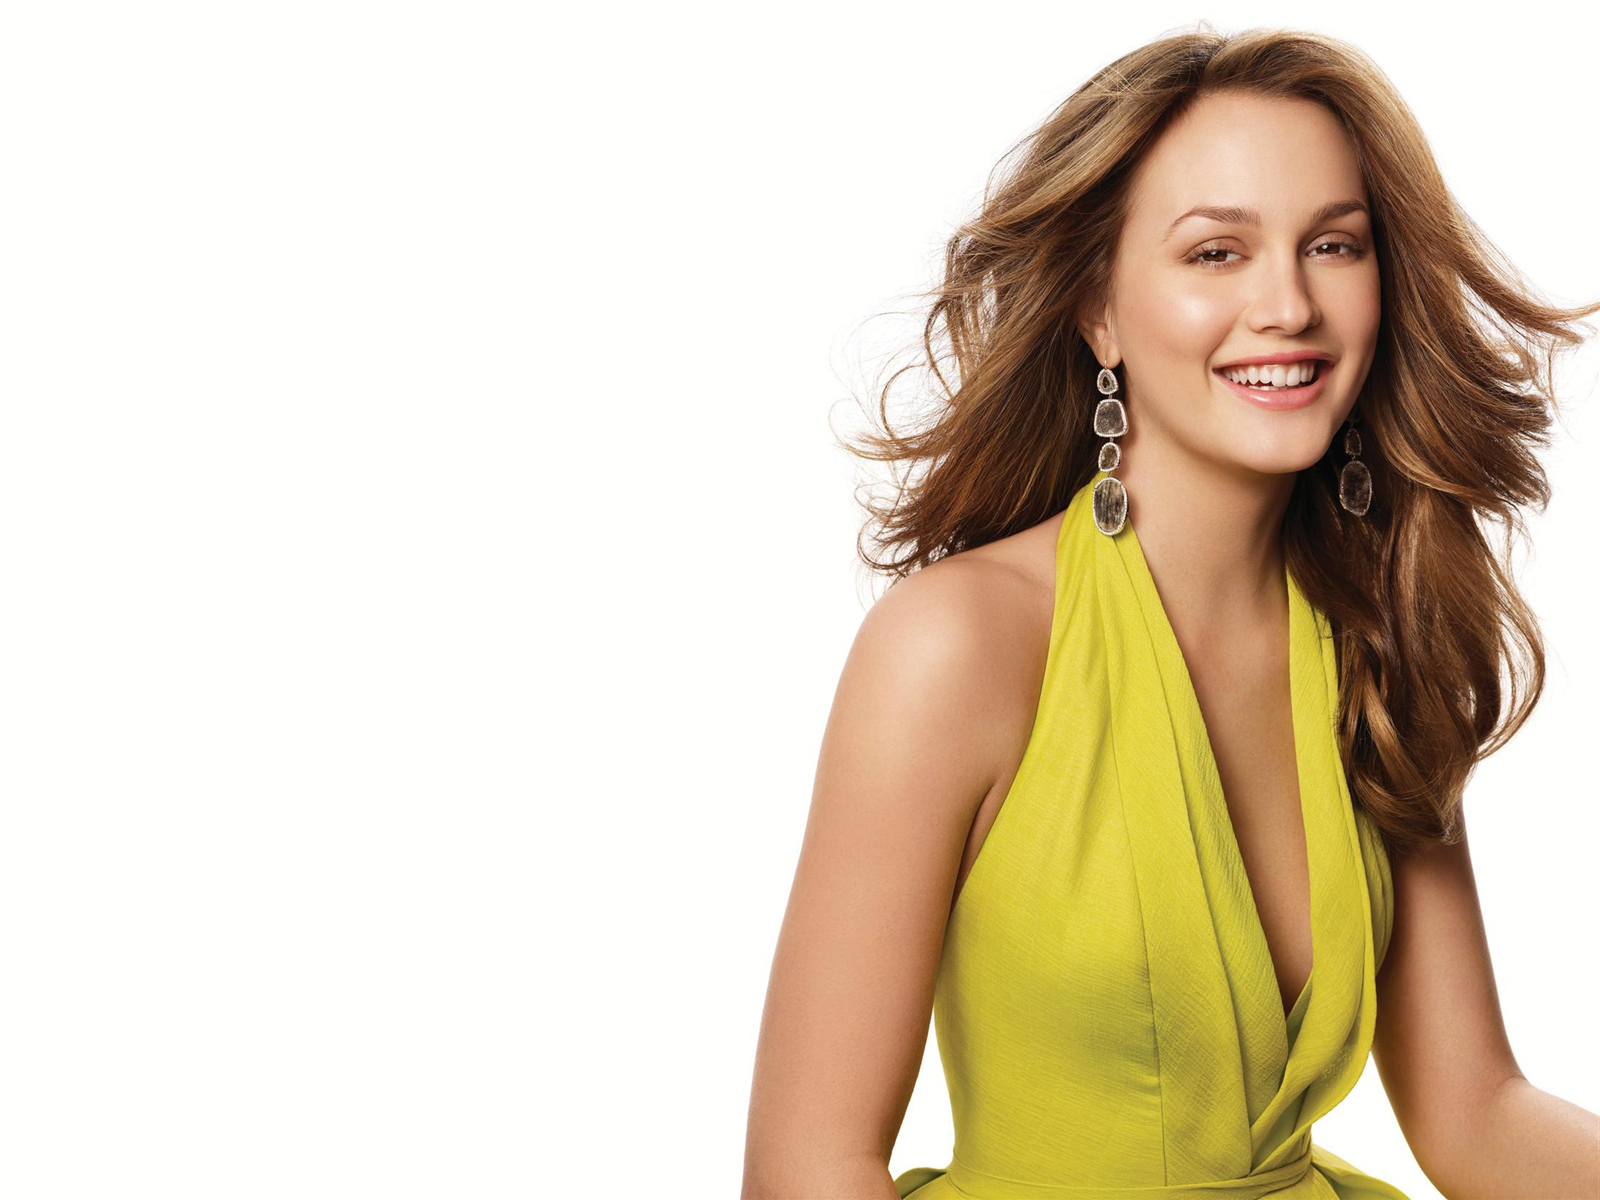 Leighton Meester Beautiful Actress wallpaper